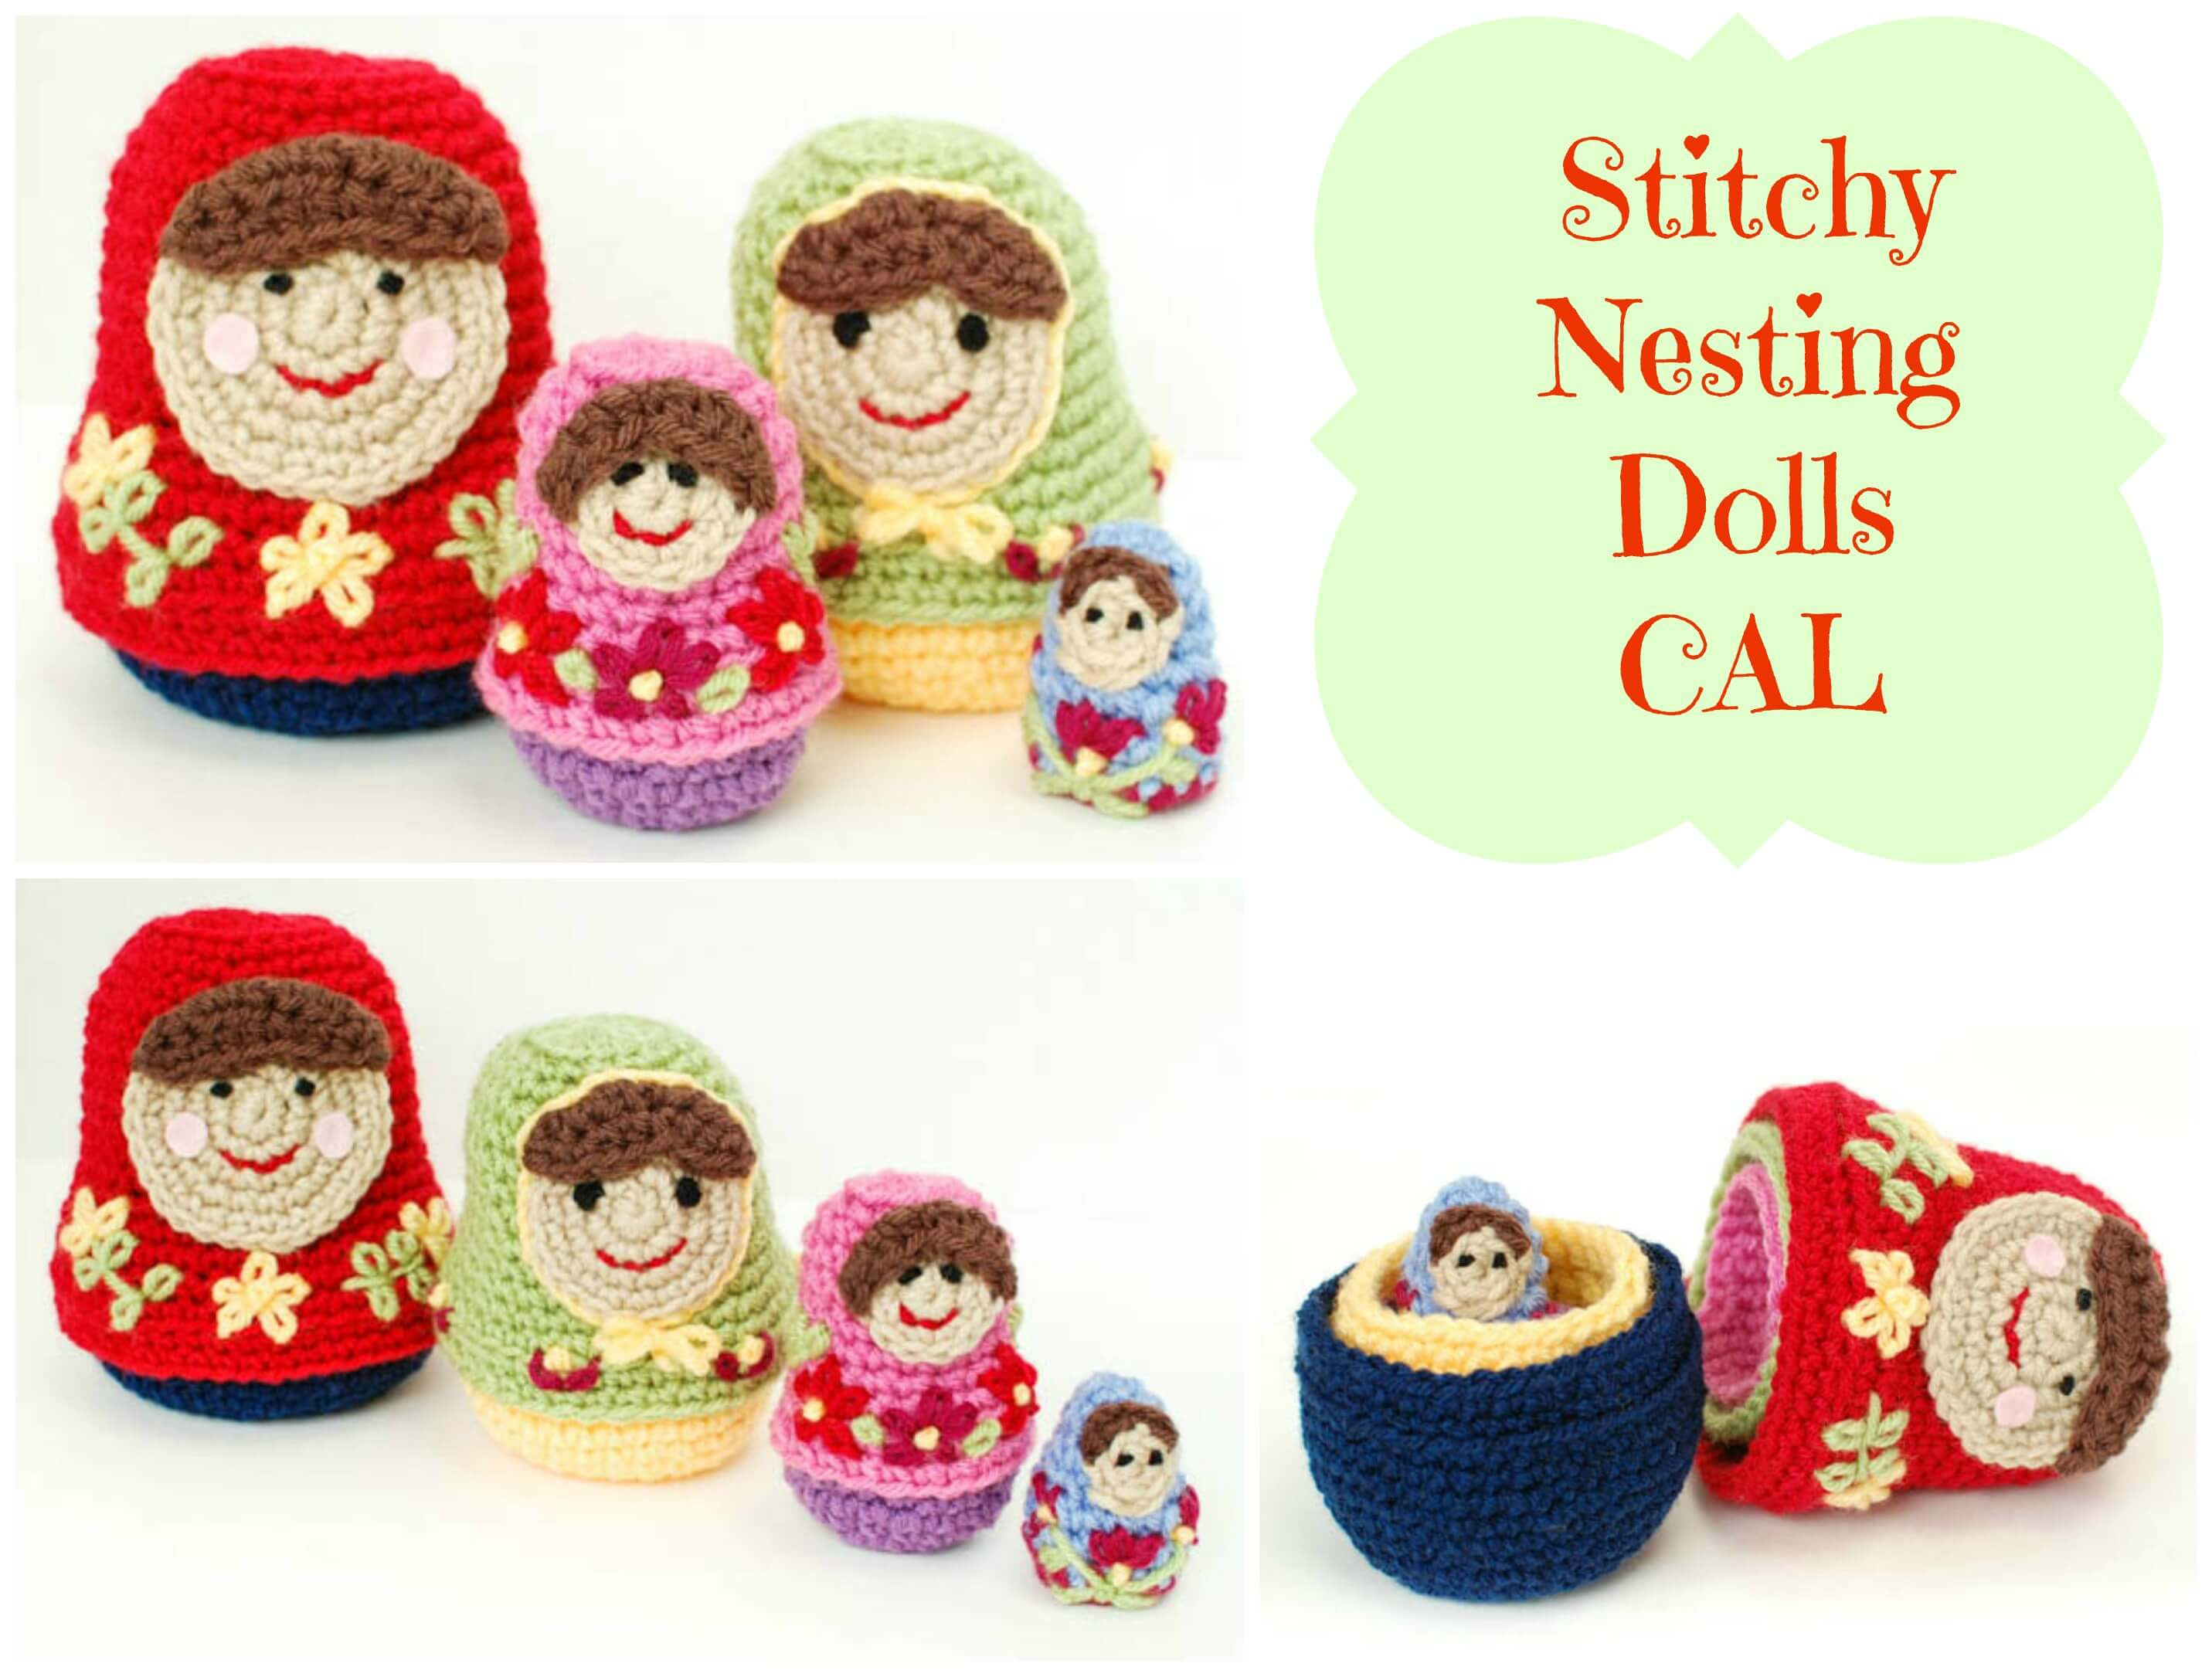 Crochet Nesting Dolls CAL Finale and Giveaway! - Petals to Picots